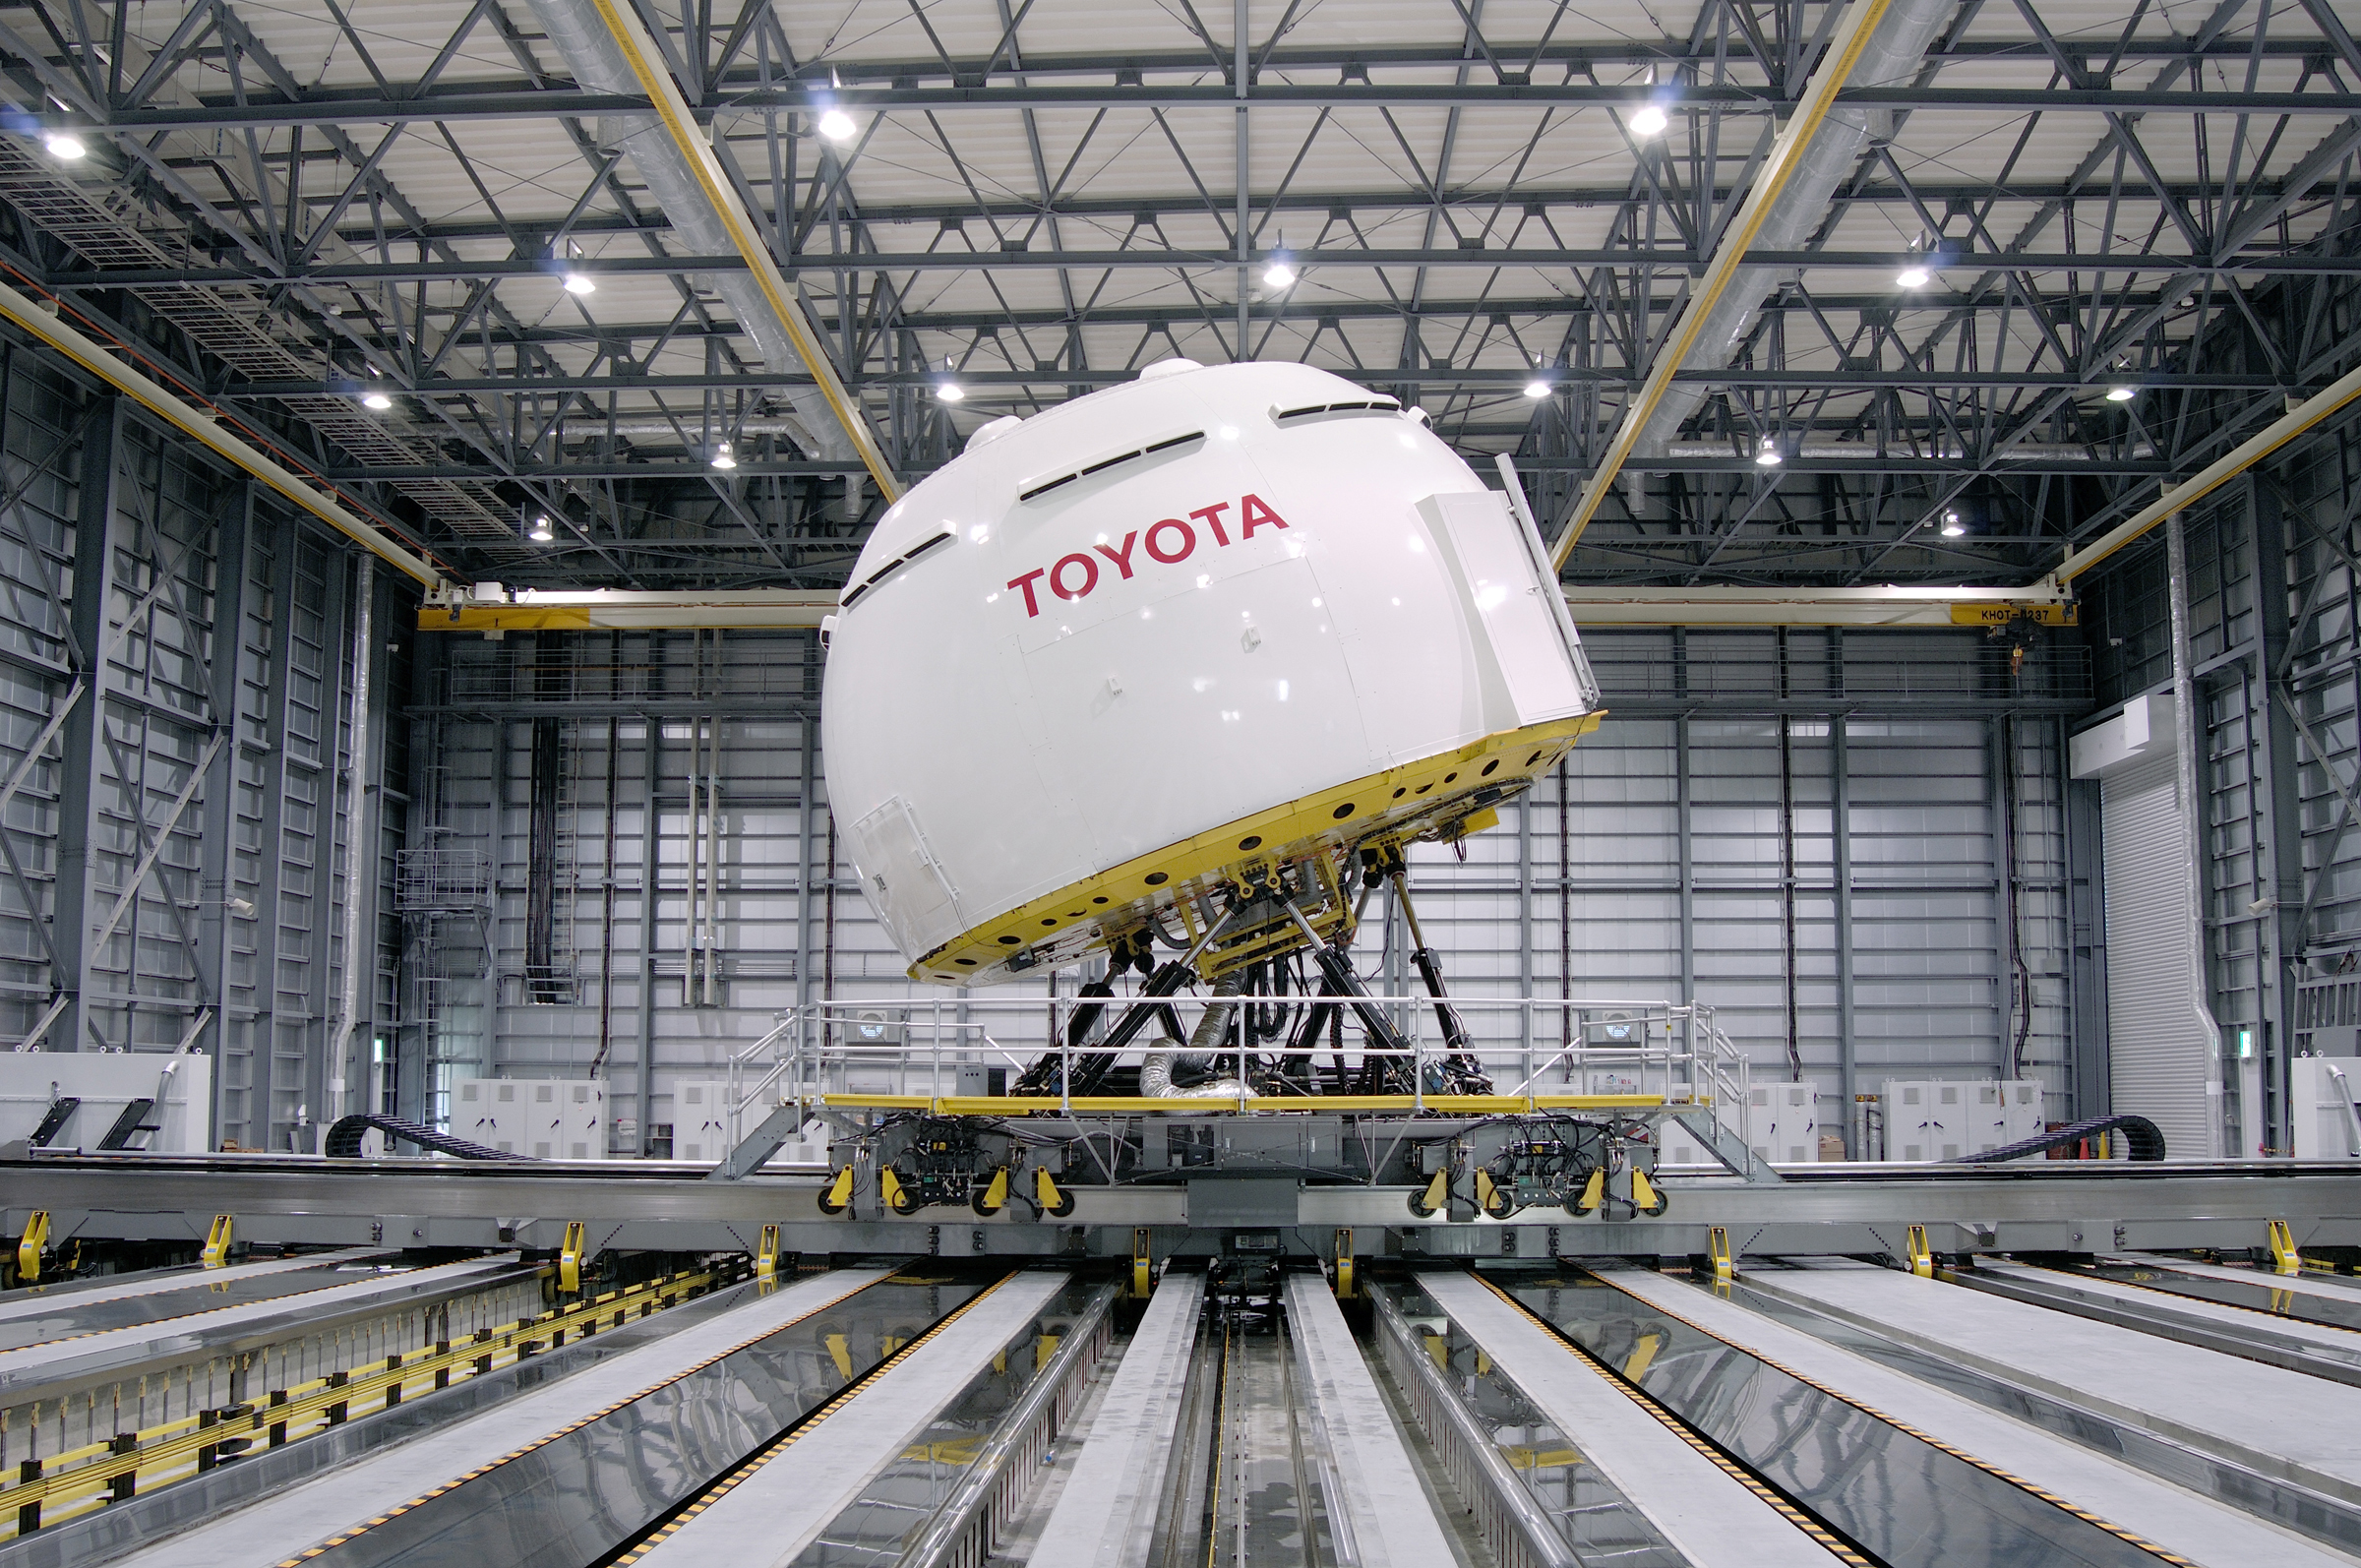 A driving simulator created by Toyota near Mount Fuji in Japan.